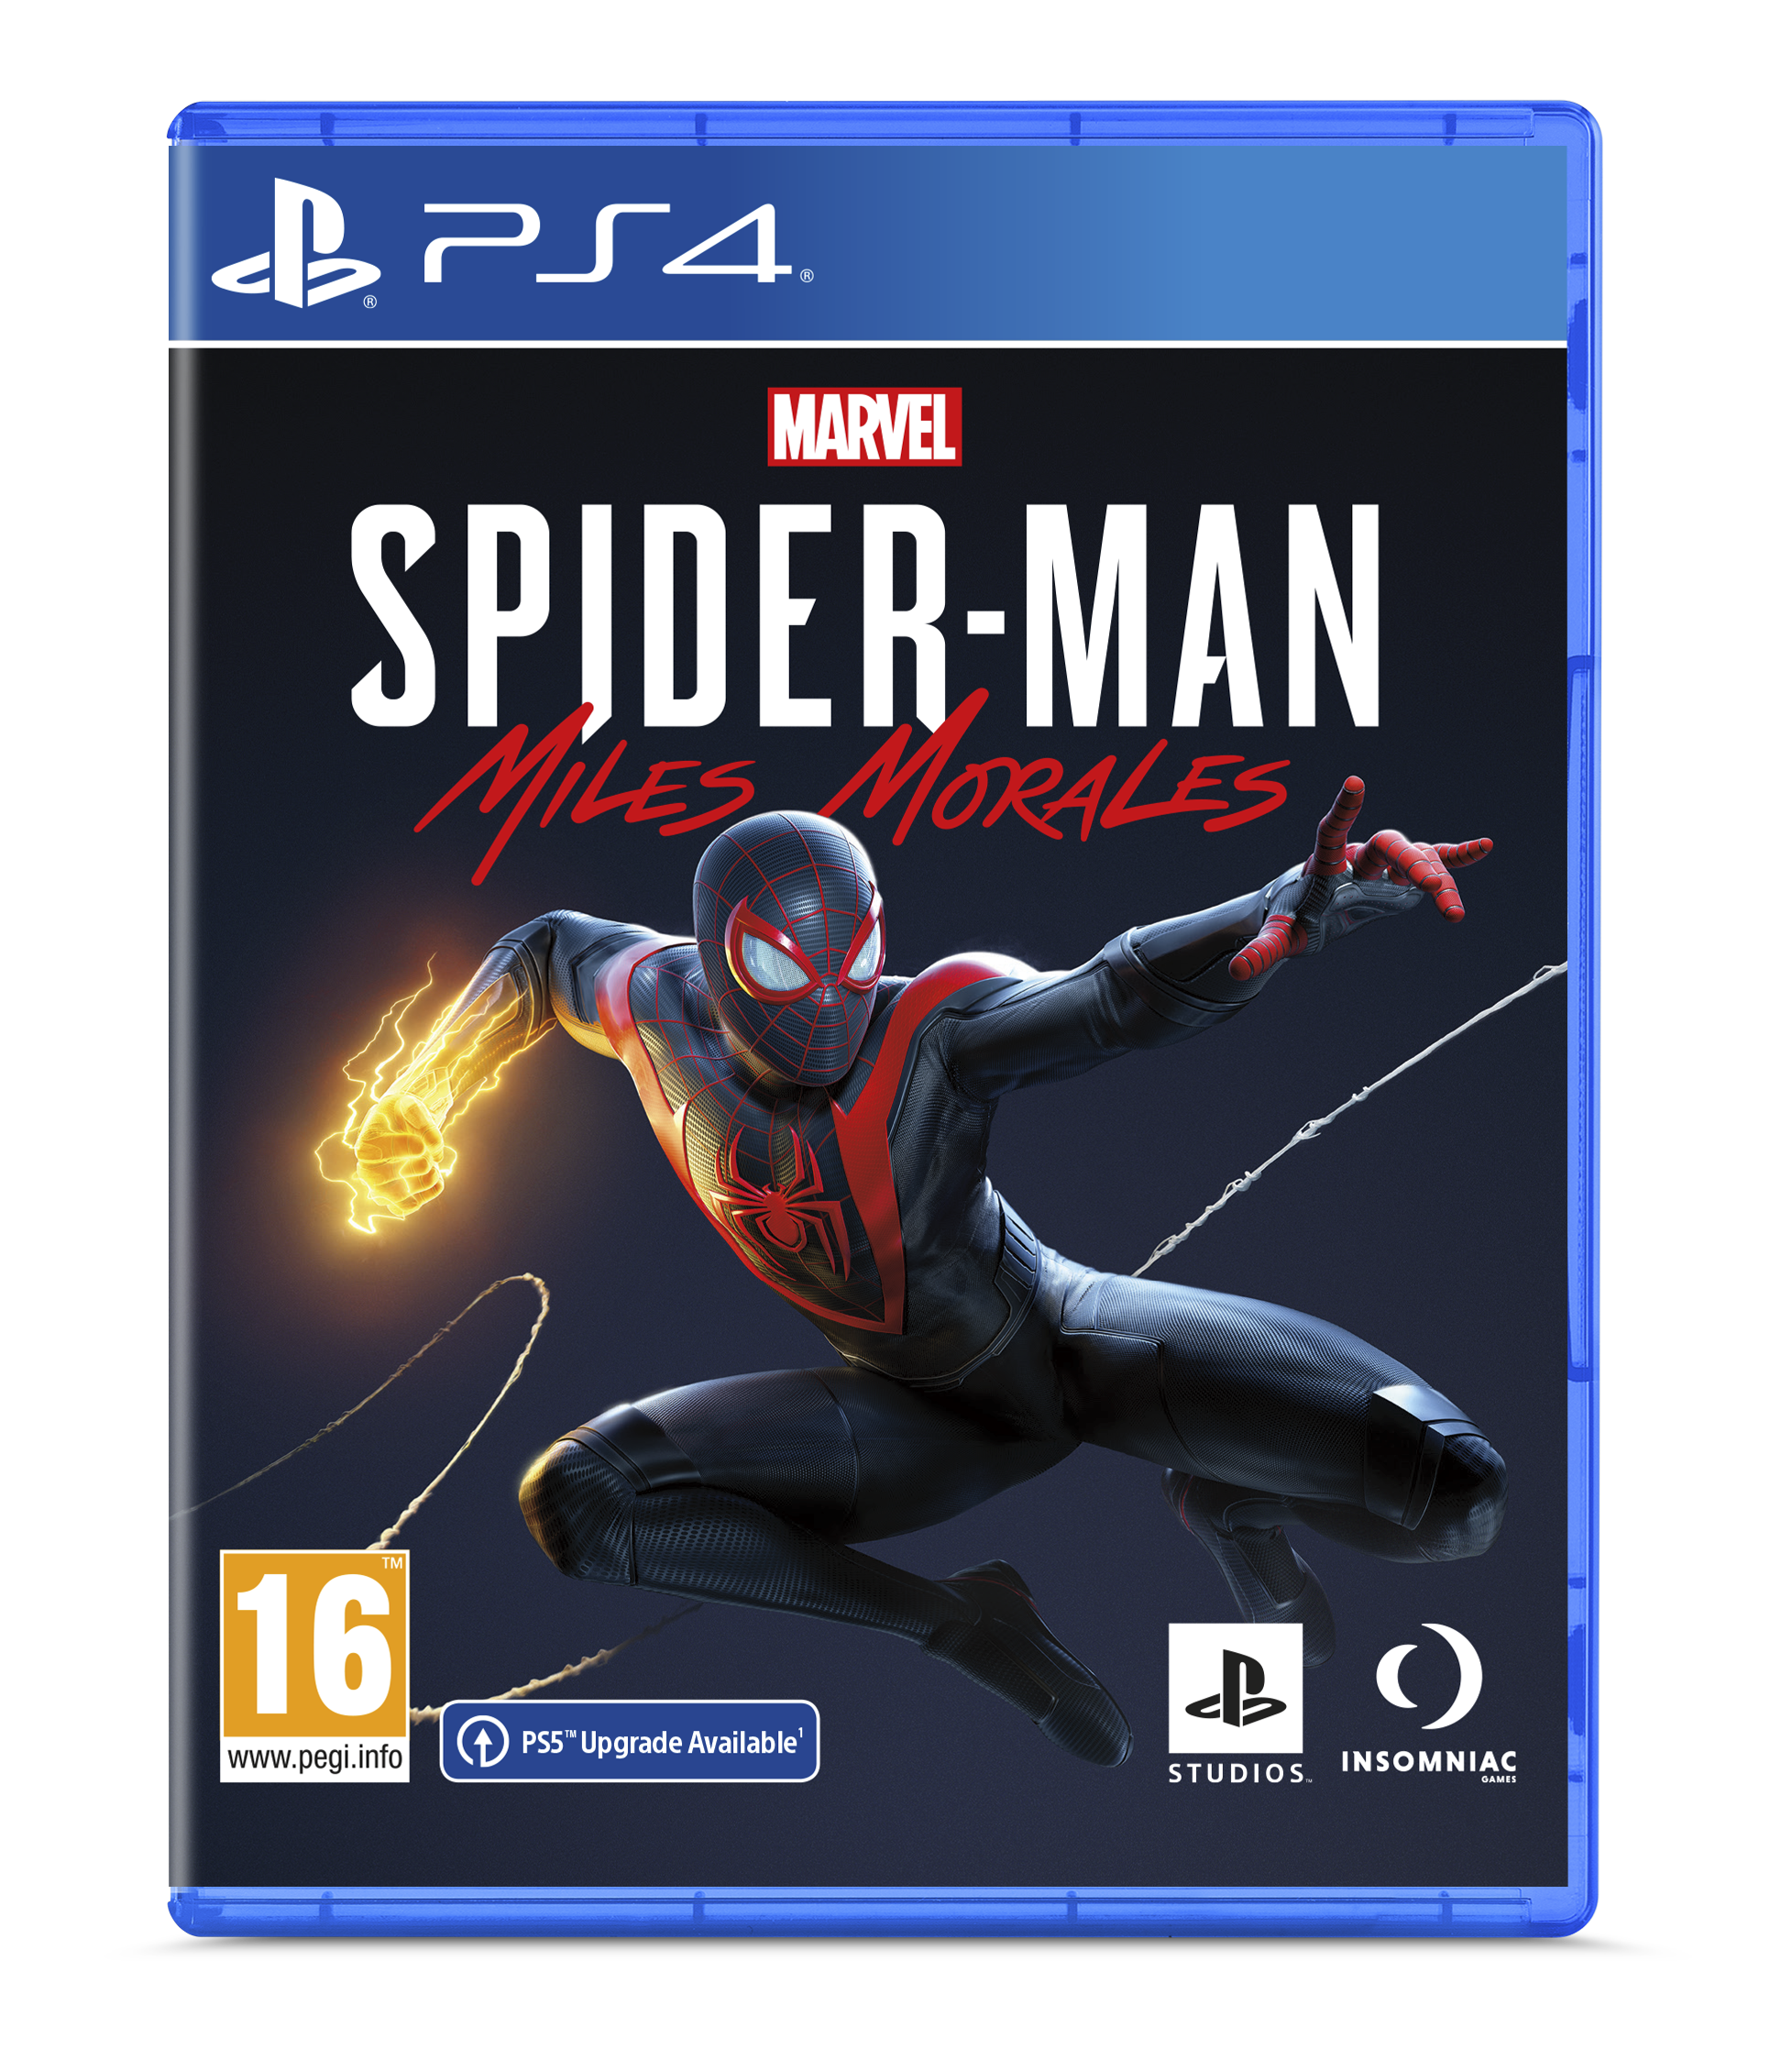 marvel's spider-man miles morales ps4 physical